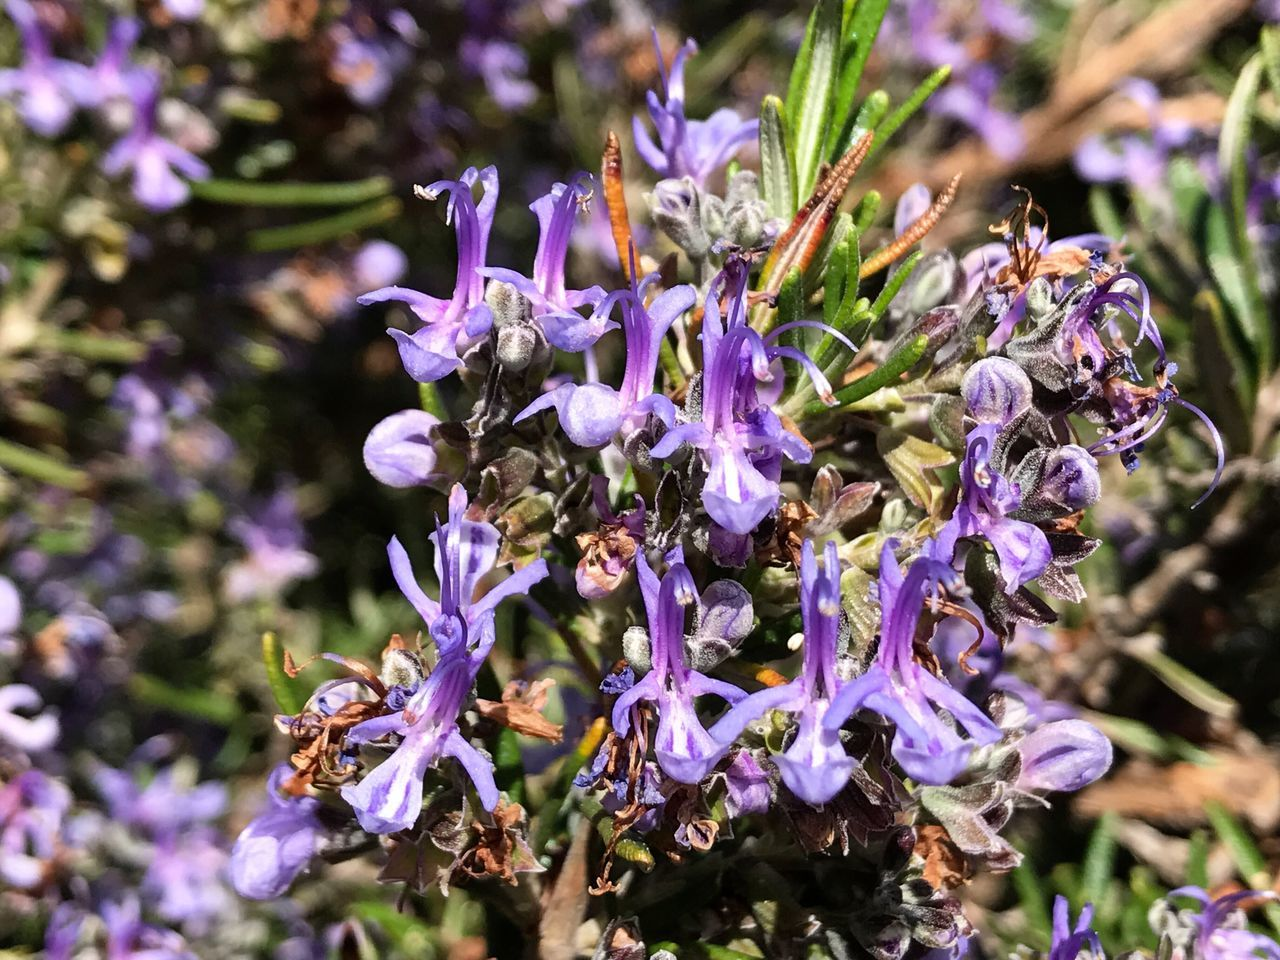 Rosemary Rosemary Herb Rosmarinus Officinalis Rosmarinus Aromatic Flower Nature Growth Beauty In Nature Purple Freshness Fragility Close-up Plant No People Outdoors Day Flower Head Spring Springtime Medicinal Plant Homeopathy Natural Medicine Medicinalherbs Odor